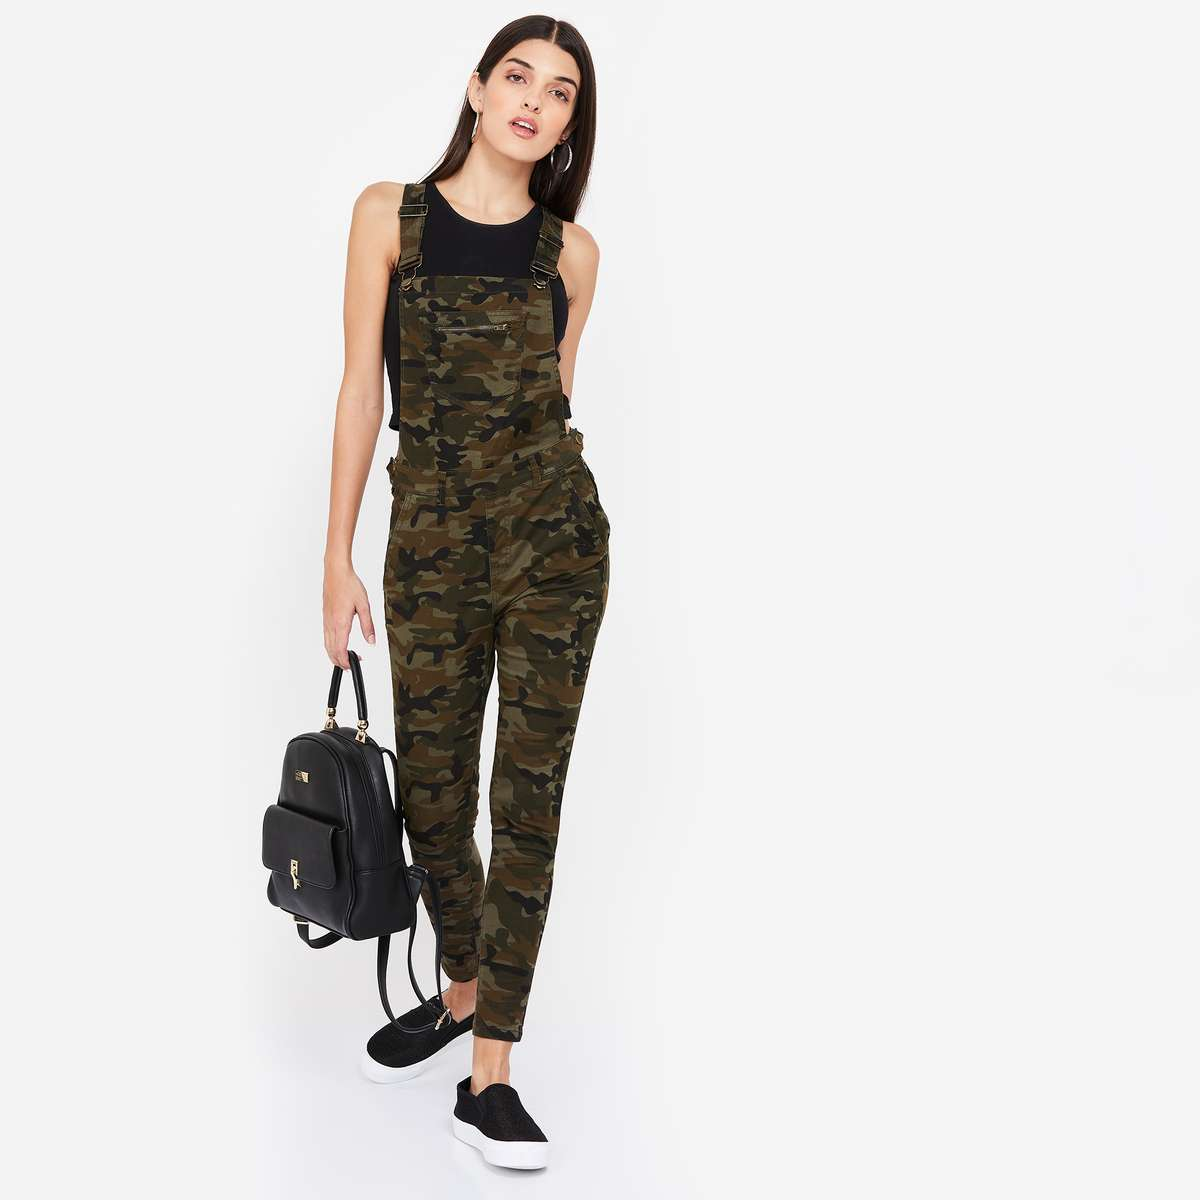 6.GINGER Camouflage Print Dungaree